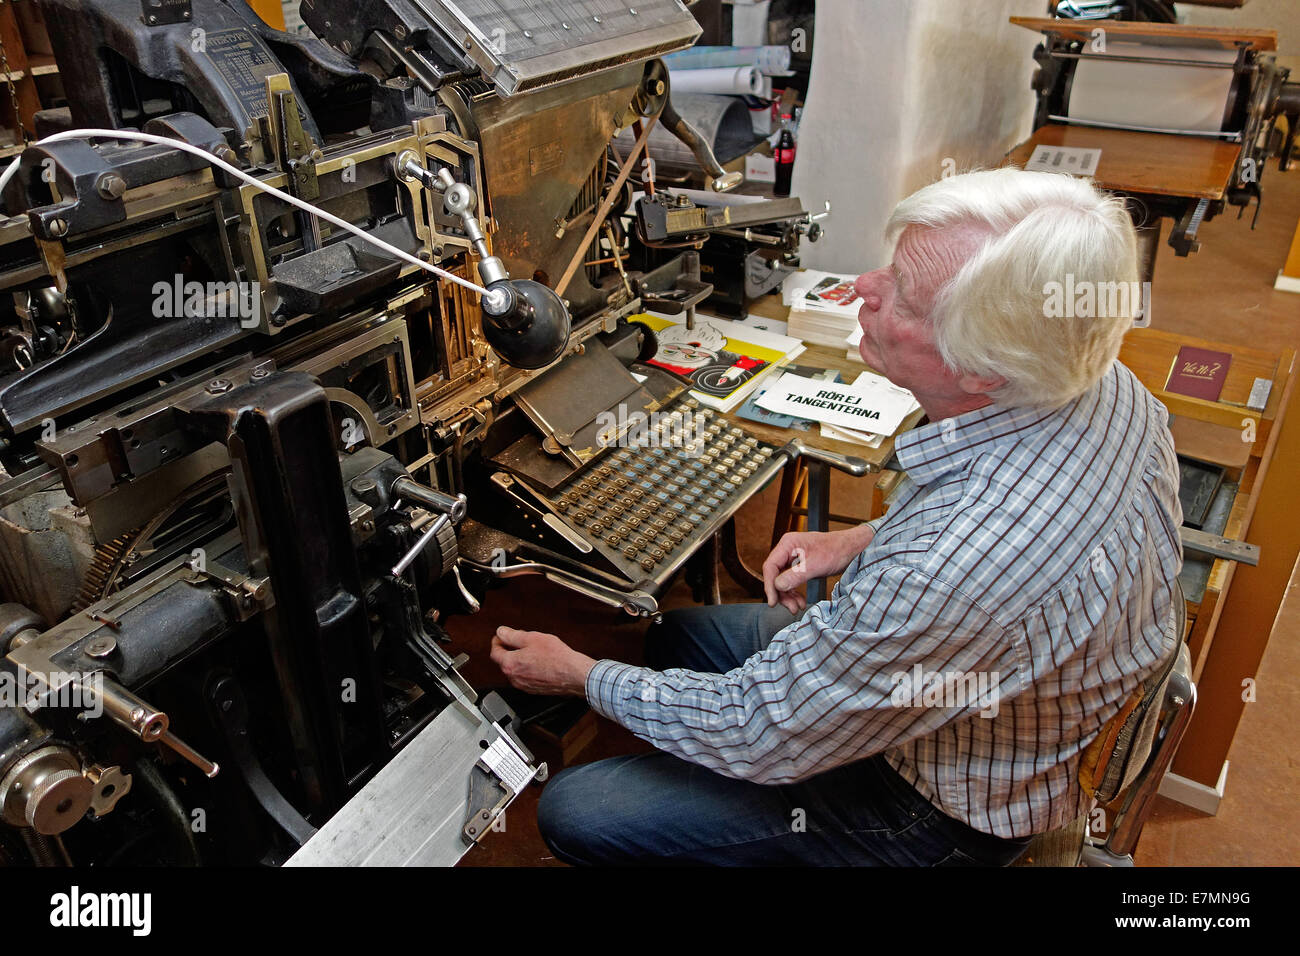 Operator works on old Typesetting Machine by Intertype Corporation, Brooklyn, N.Y.  from  1916 - Stock Image